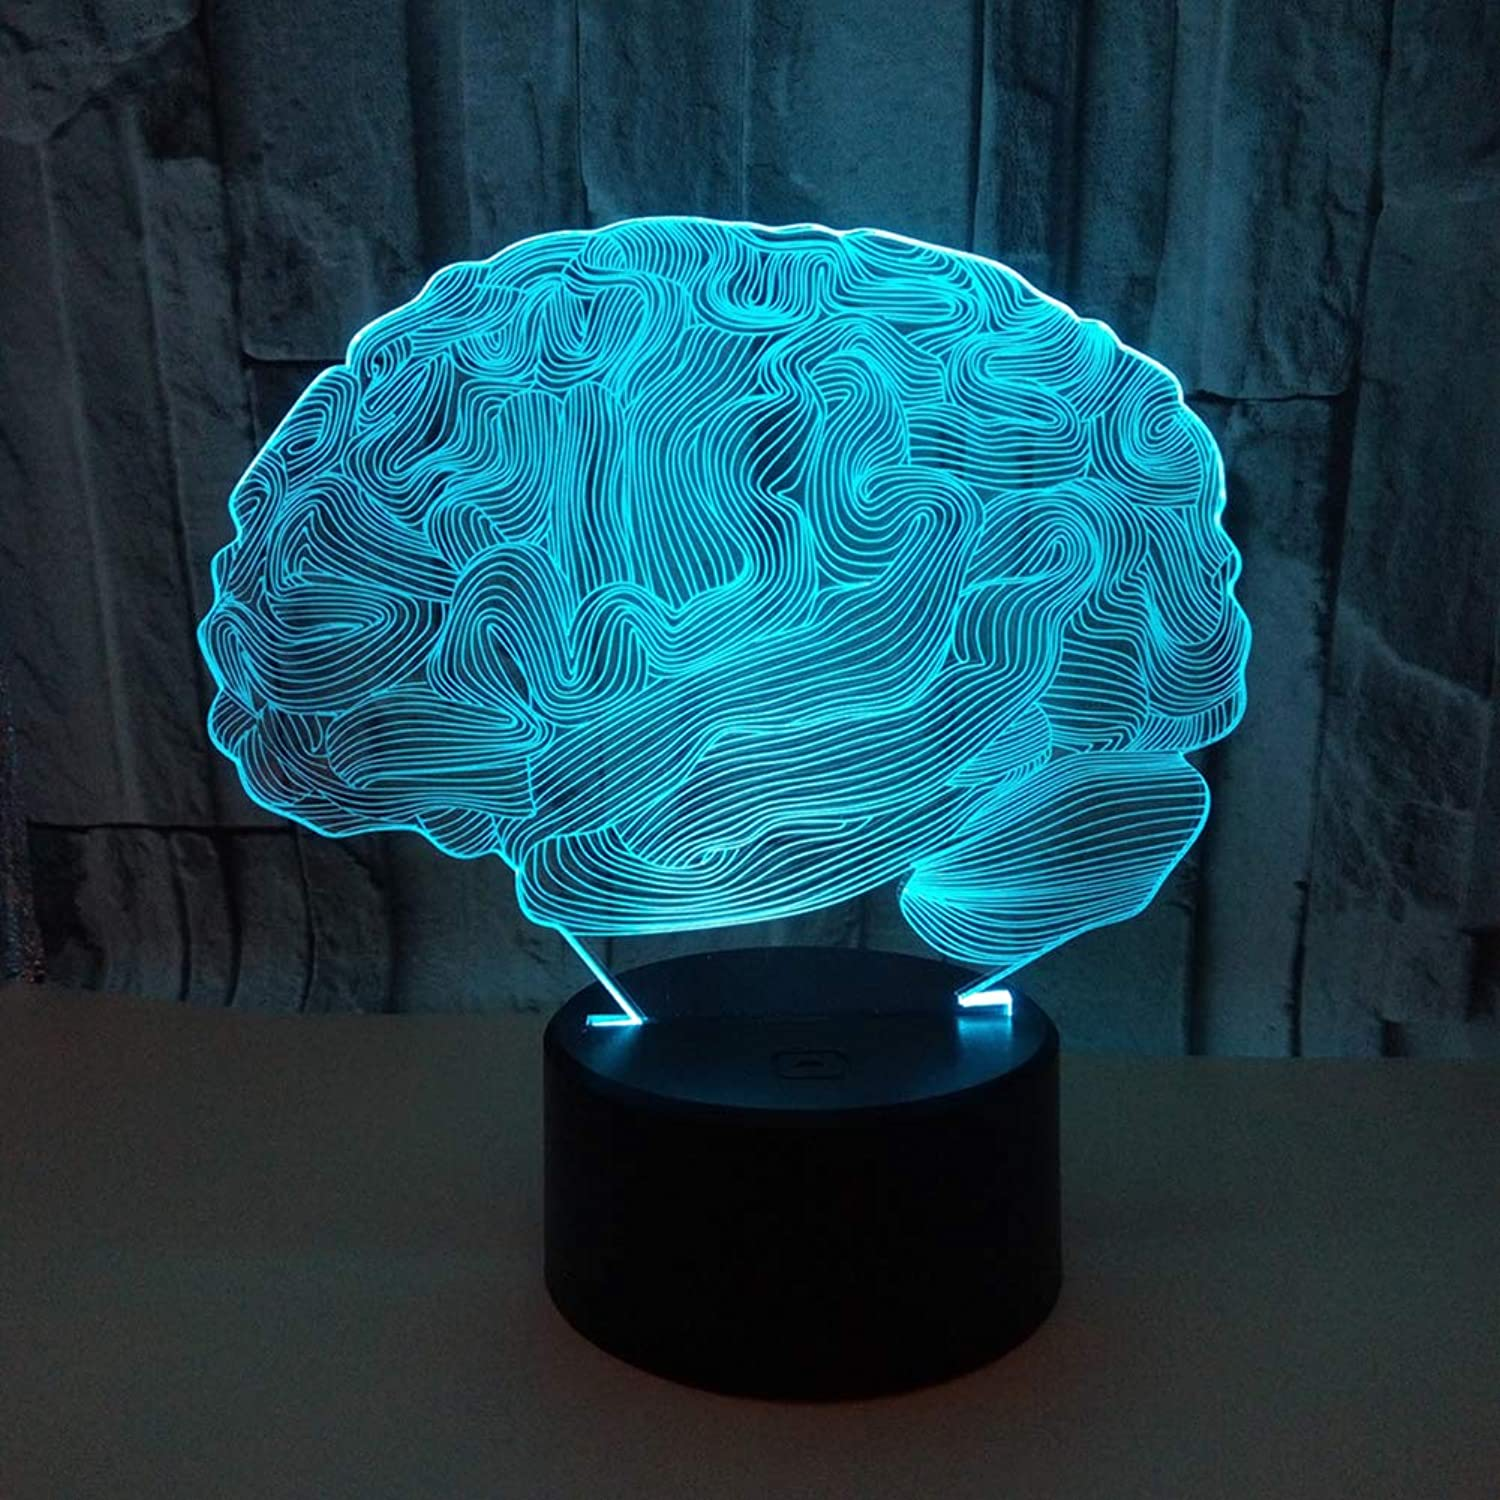 Led 3D Illusion Night Light Table Lamp,Brain colorful Touch Visual Lights Lamps